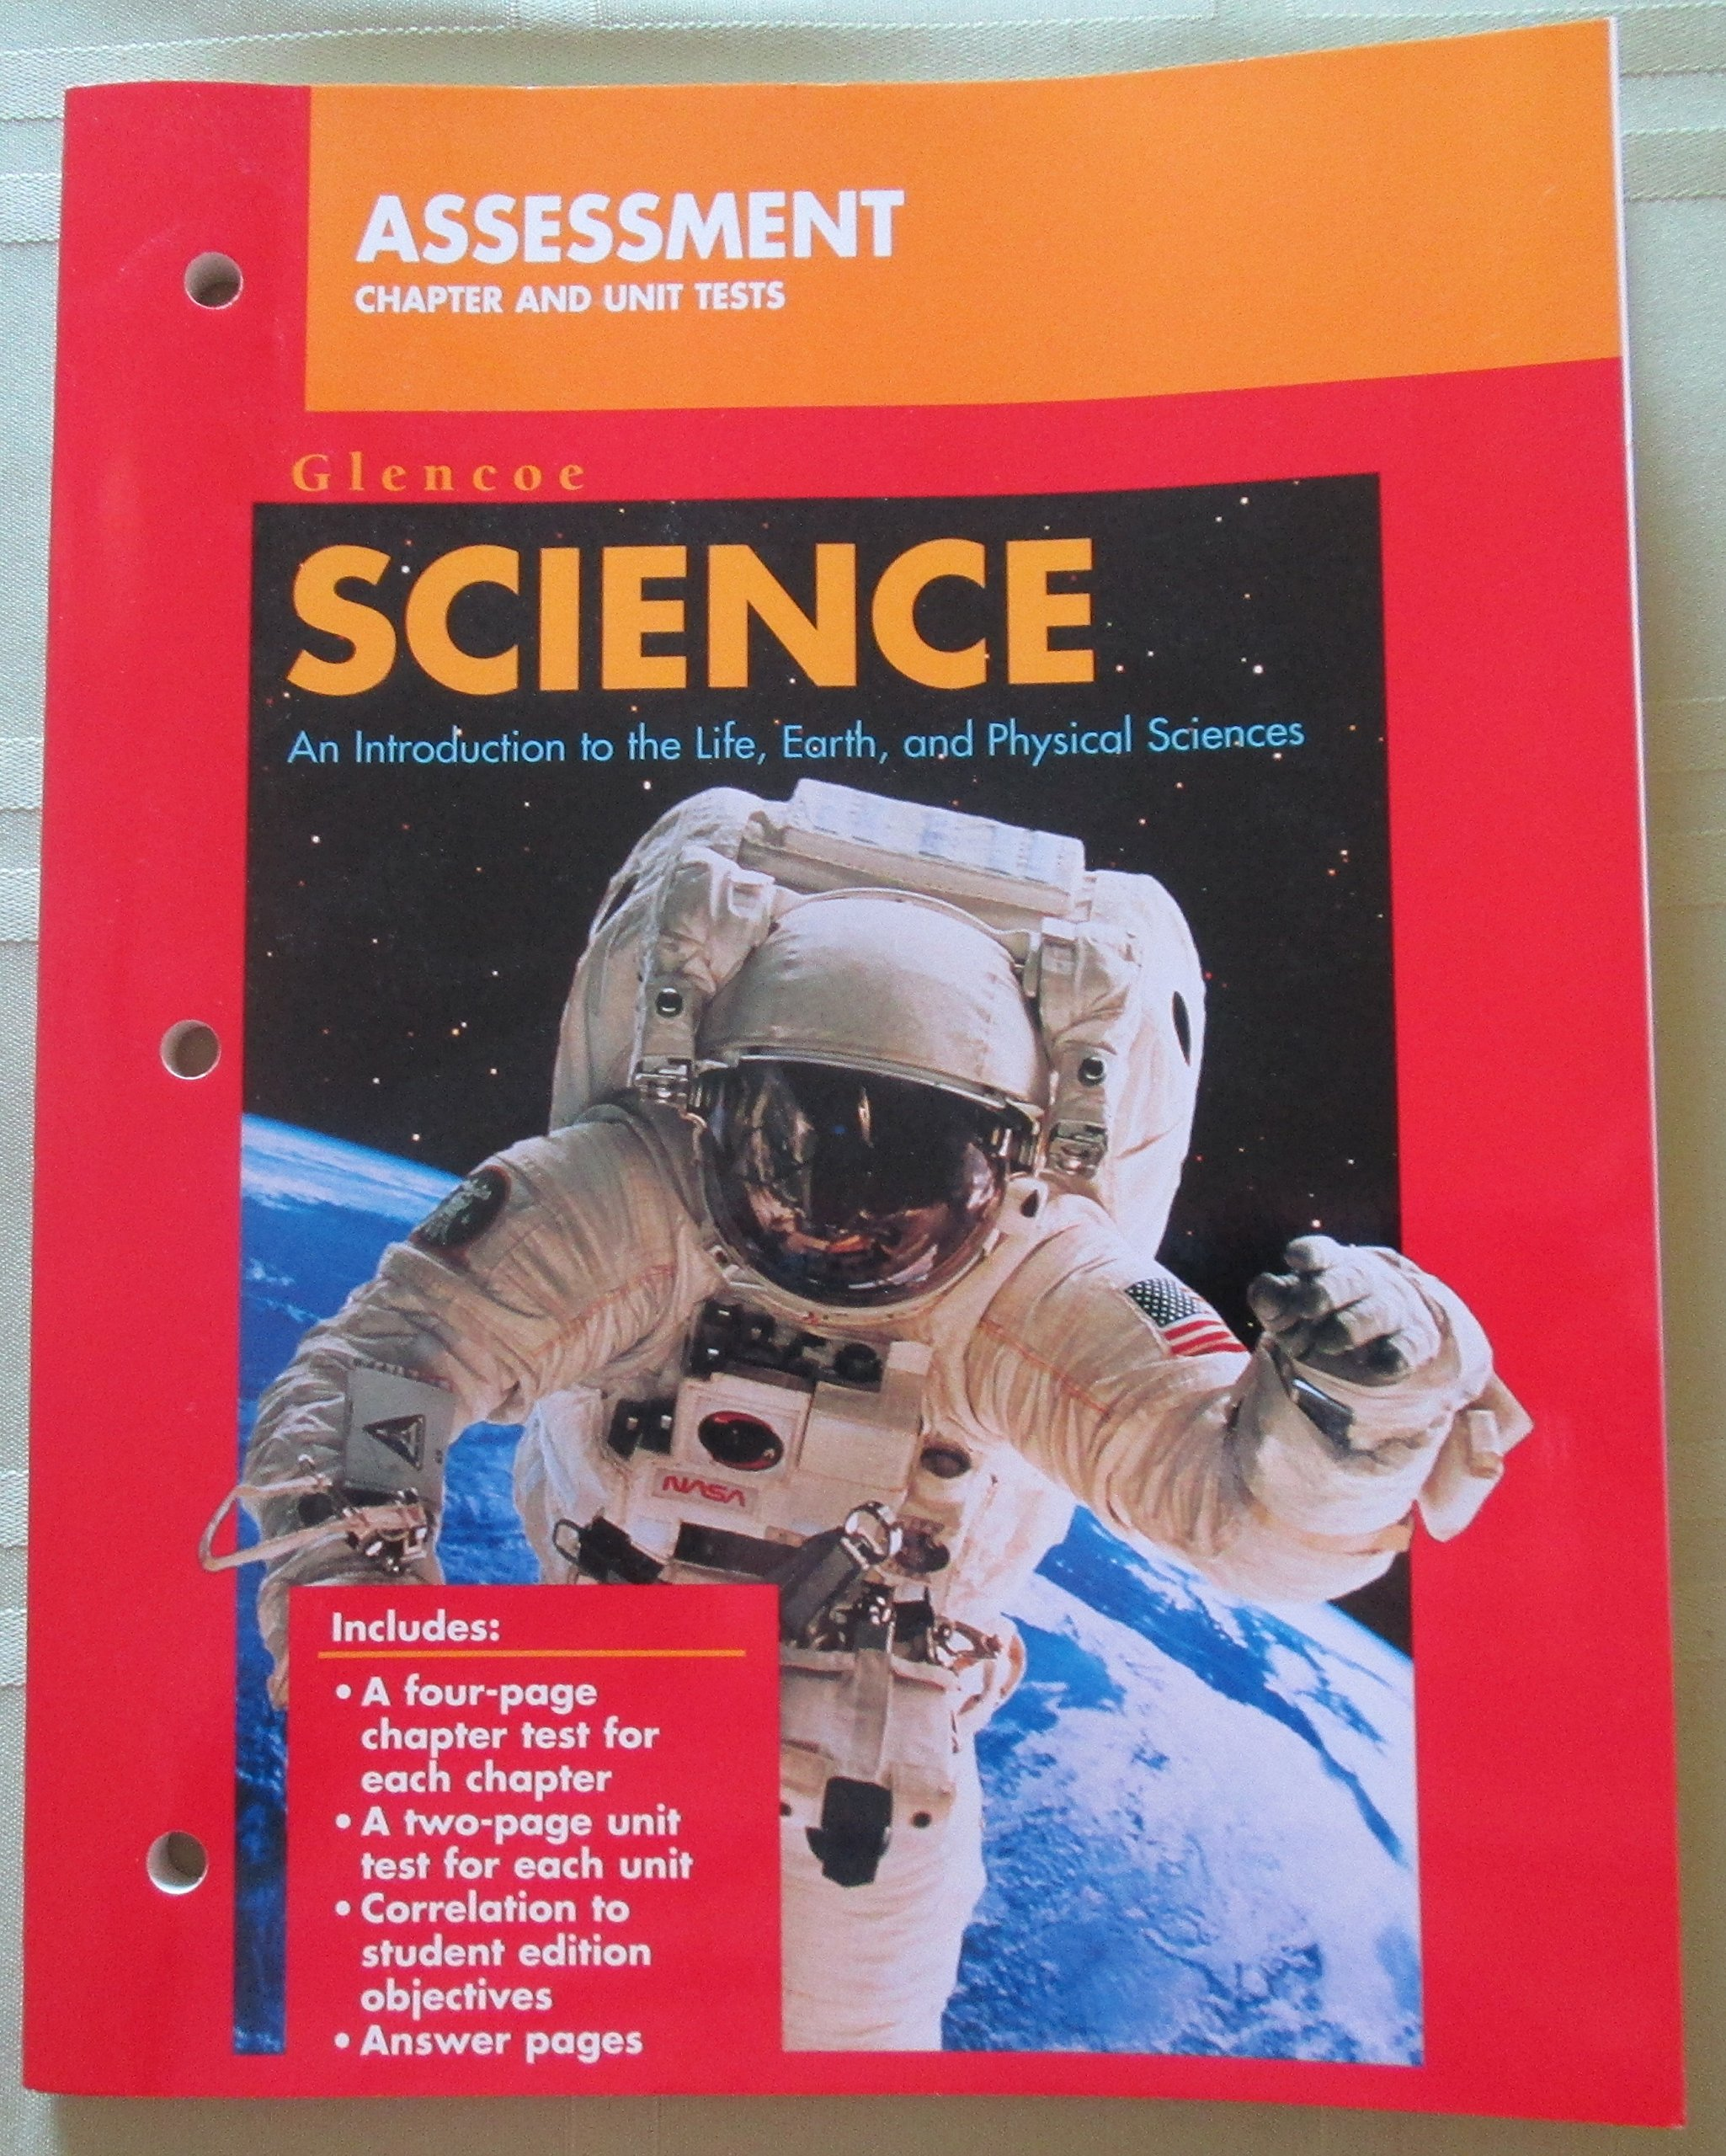 Glencoe Science: An Introduction to the Life, Earth, and Physical Sciences, Assessment Chapter and Unit Tests pdf